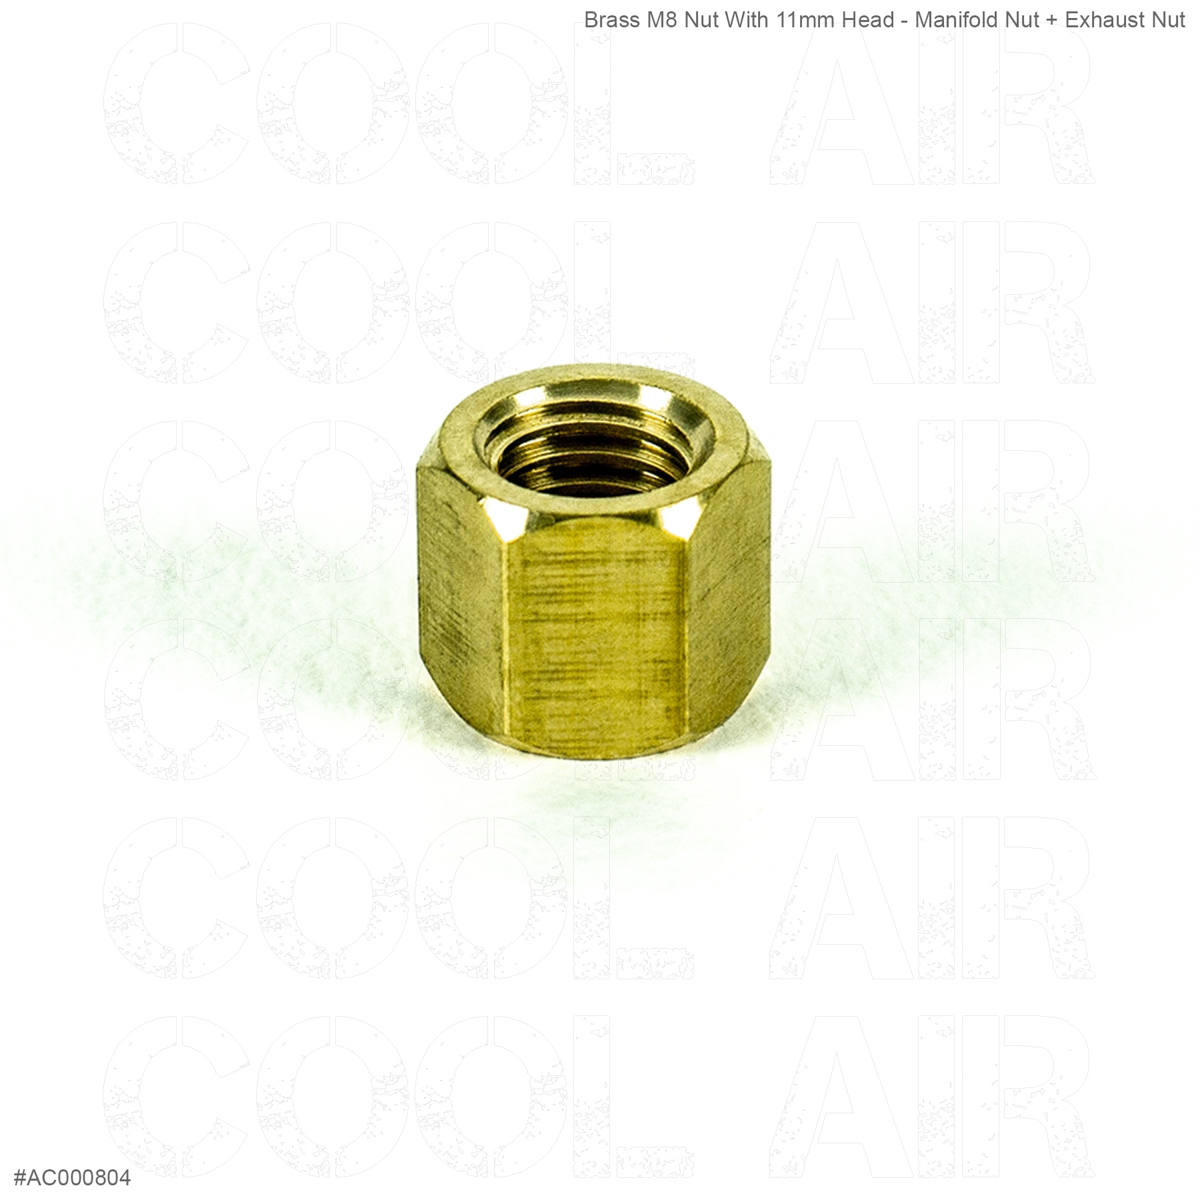 brass for manifold M8 Thread x for 11mm spanner AC000804 TYPE 3 Nut